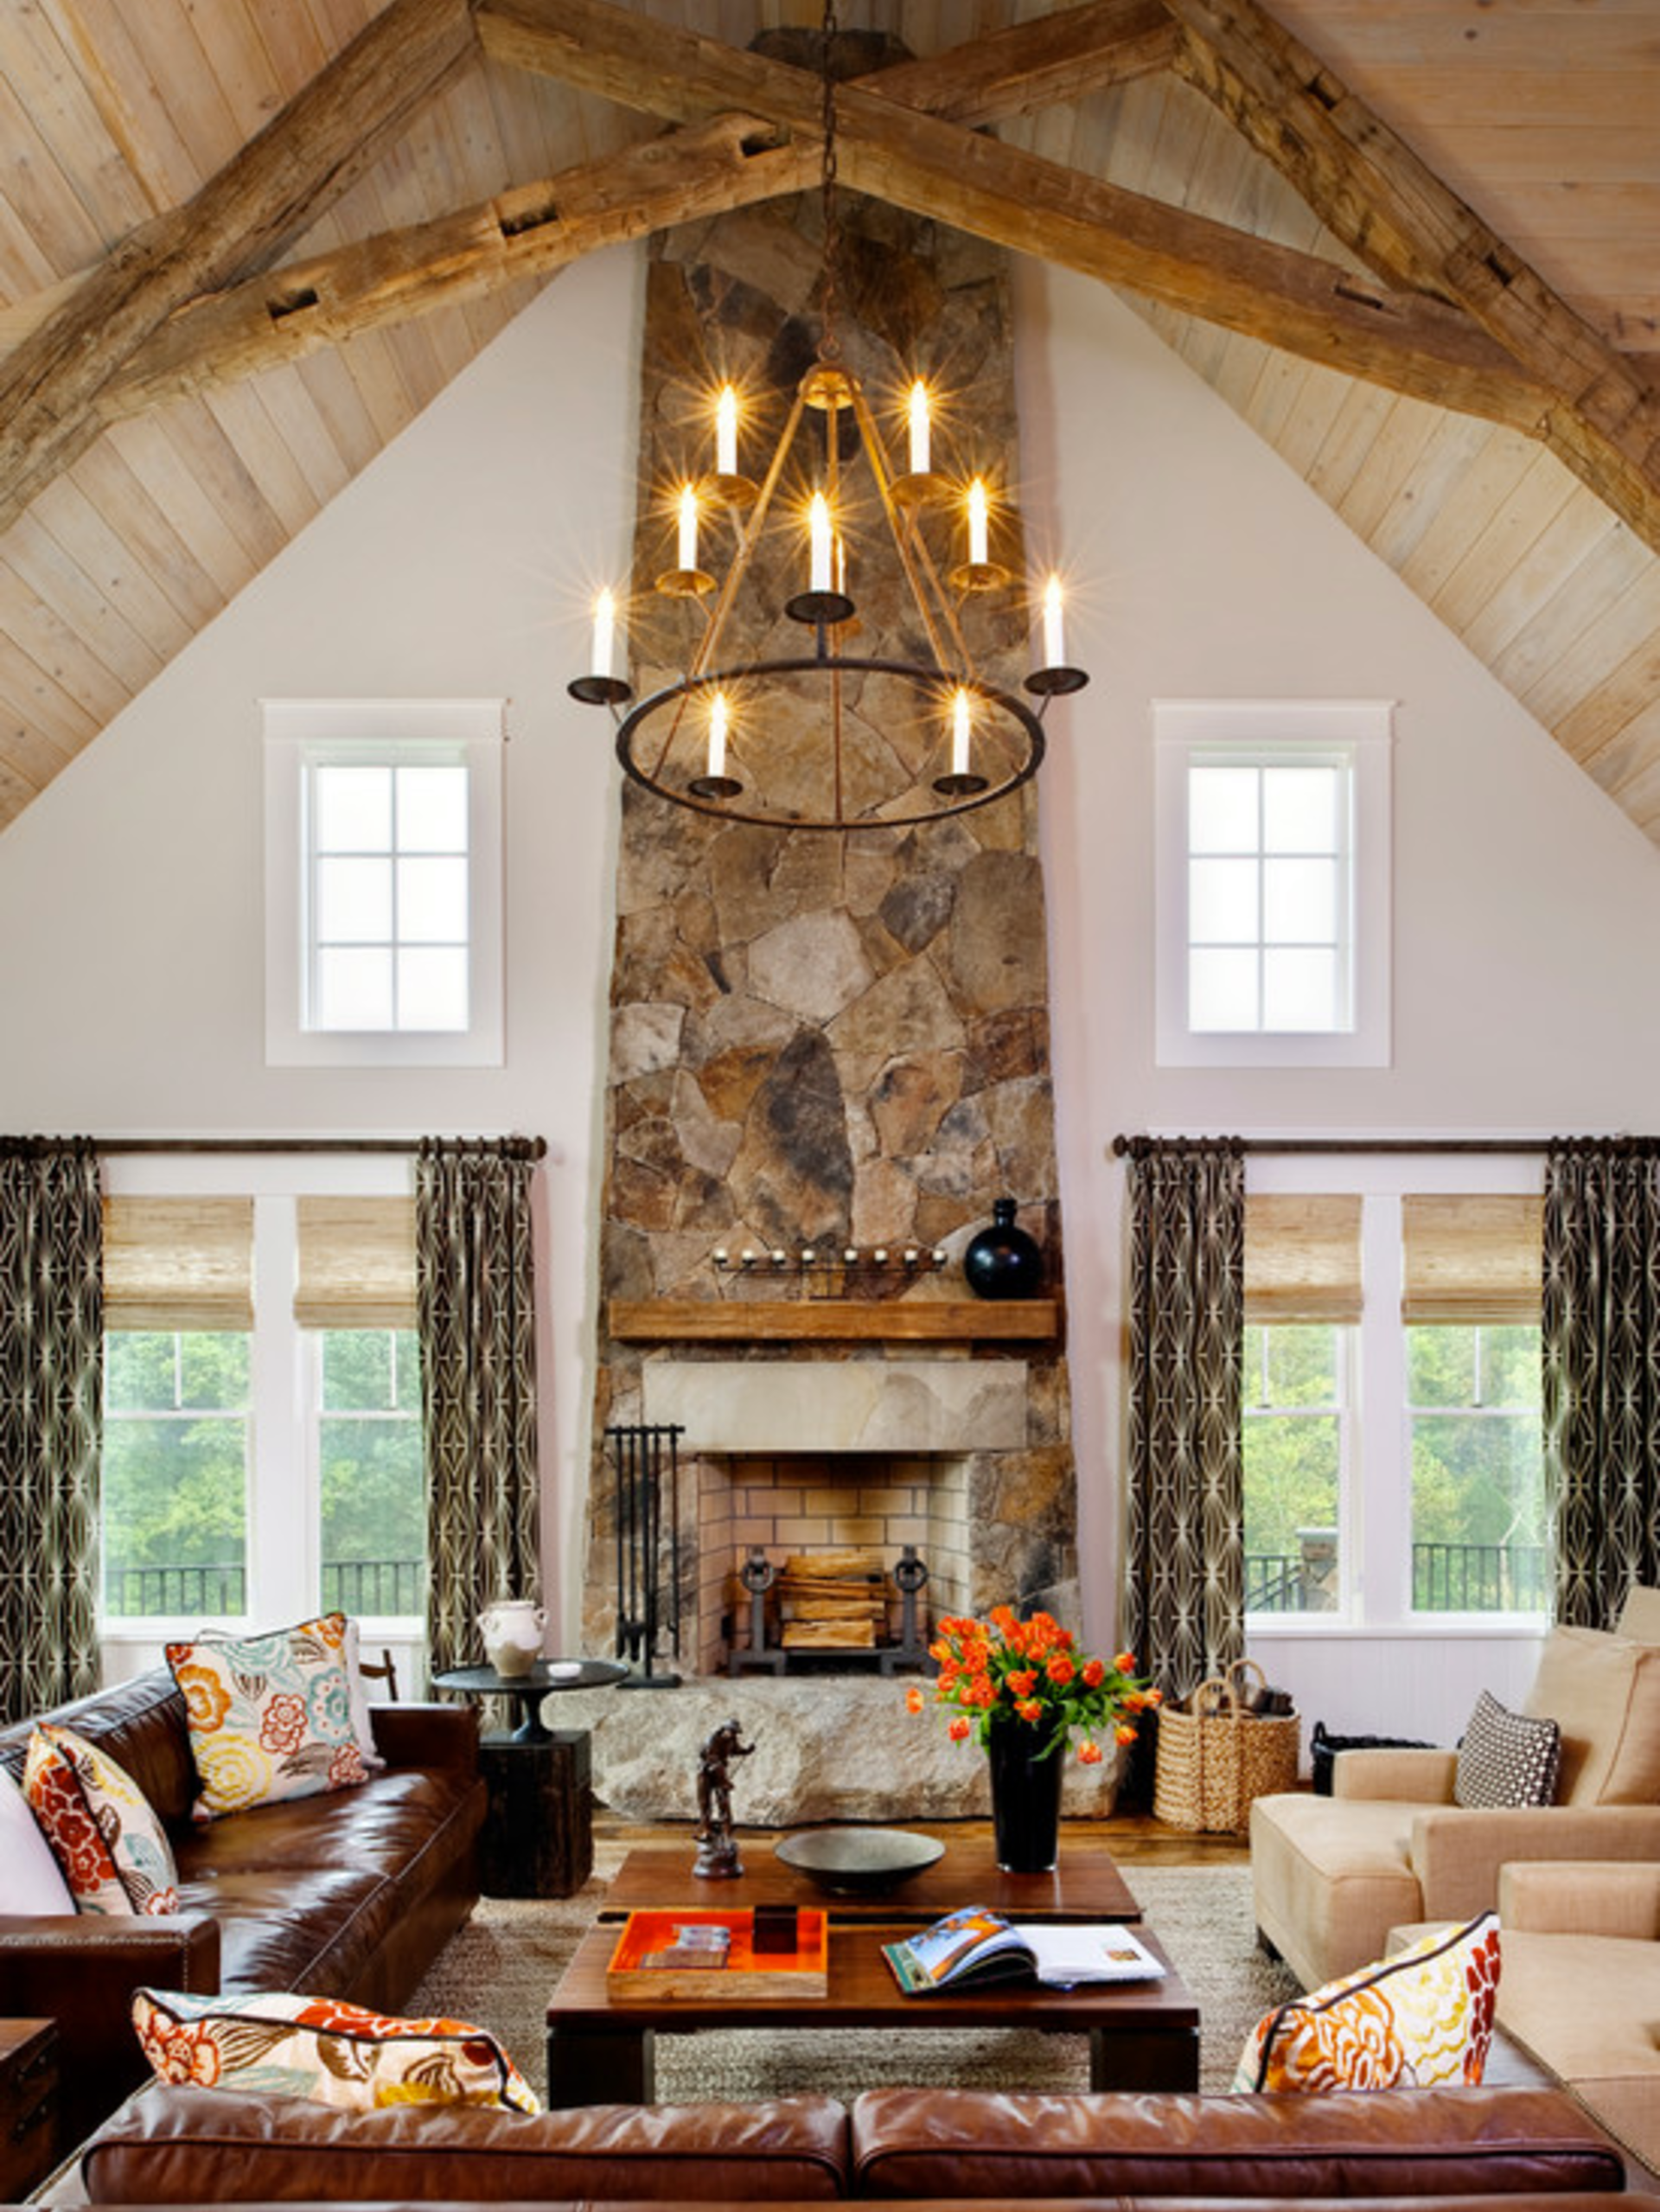 What do you think of the vaulted ceiling in this house?